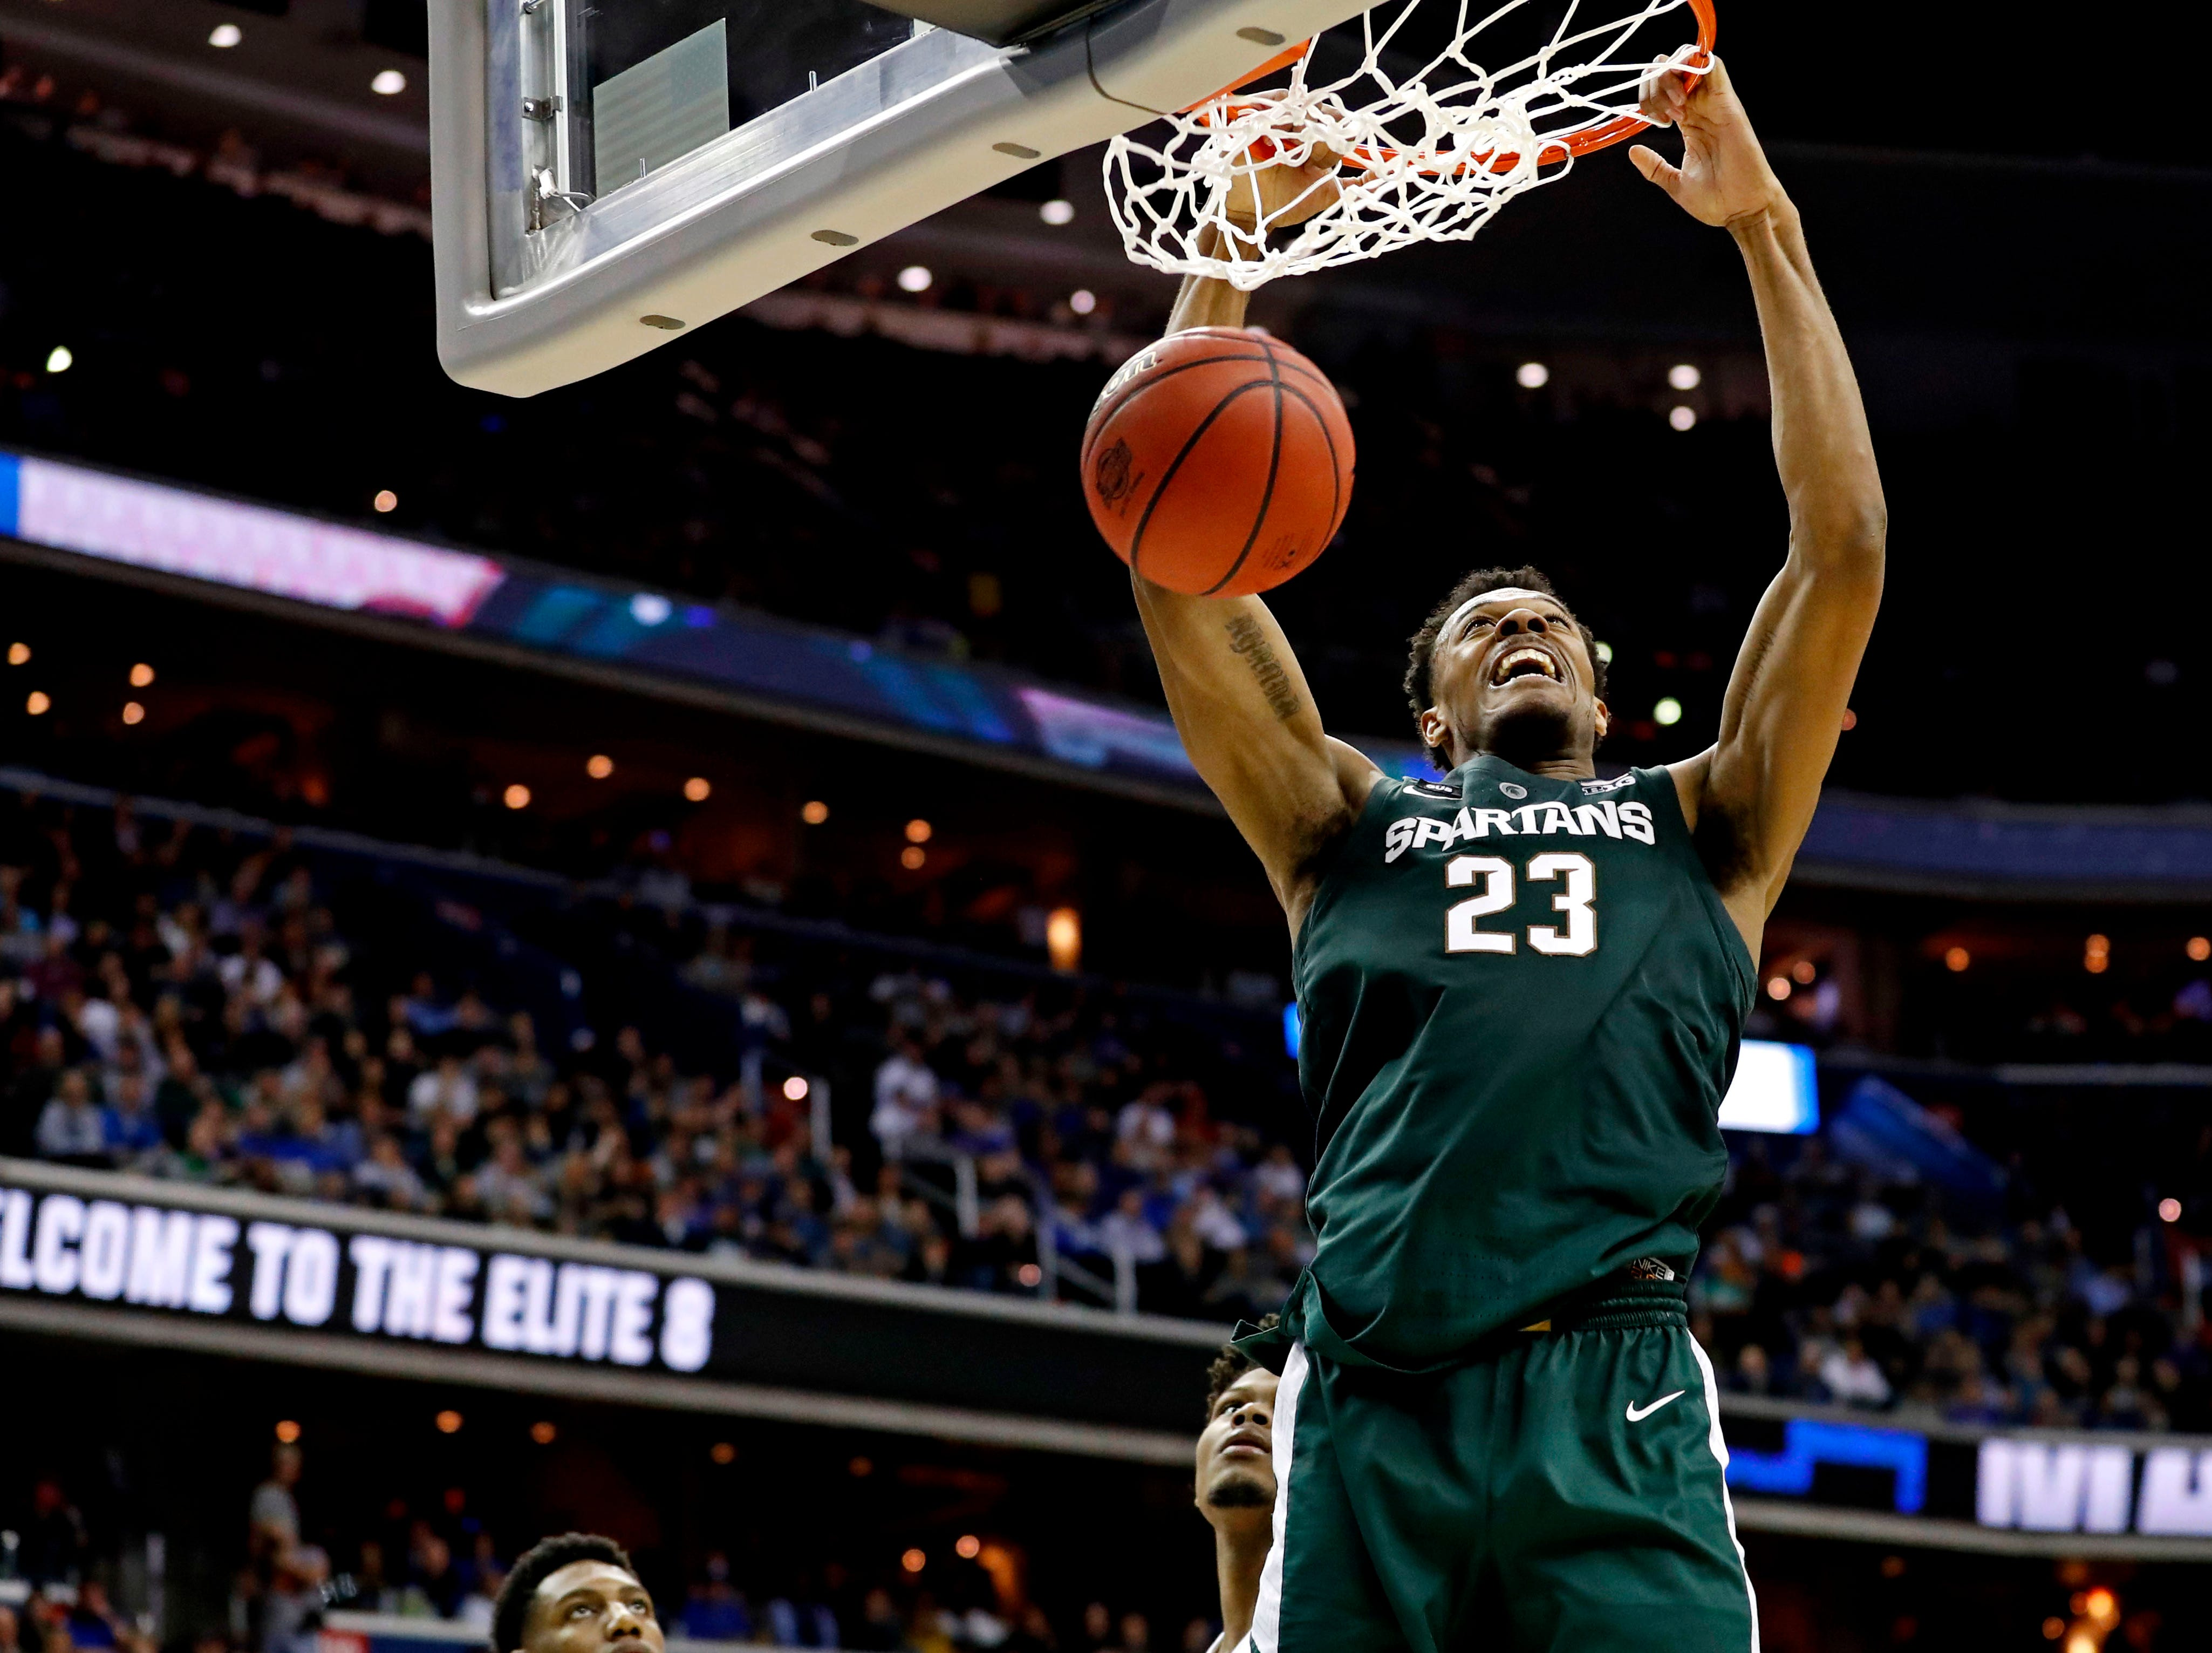 Mar 31, 2019; Washington, DC, USA; Michigan State Spartans forward Xavier Tillman (23) dunks the ball against the Duke Blue Devils during the second half in the championship game of the east regional of the 2019 NCAA Tournament at Capital One Arena. Mandatory Credit: Geoff Burke-USA TODAY Sports